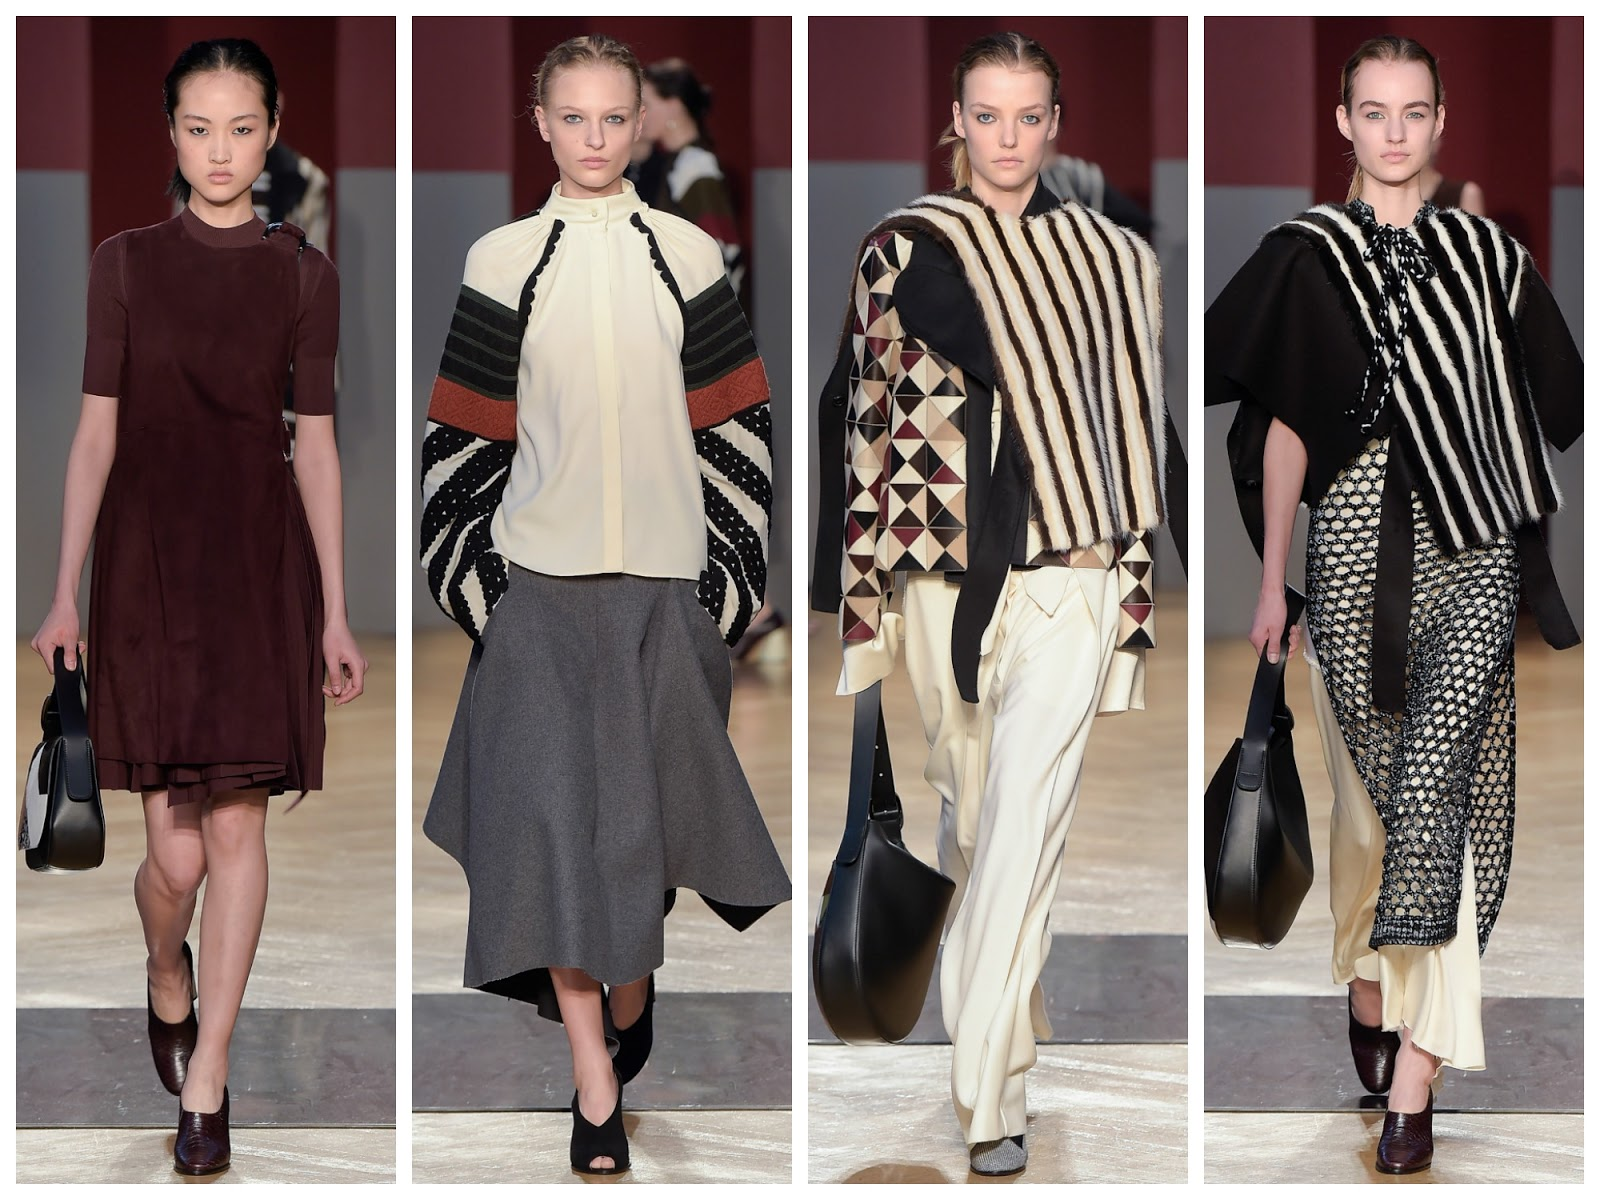 sportmax-fashion-show-fall-winter-2016-collection